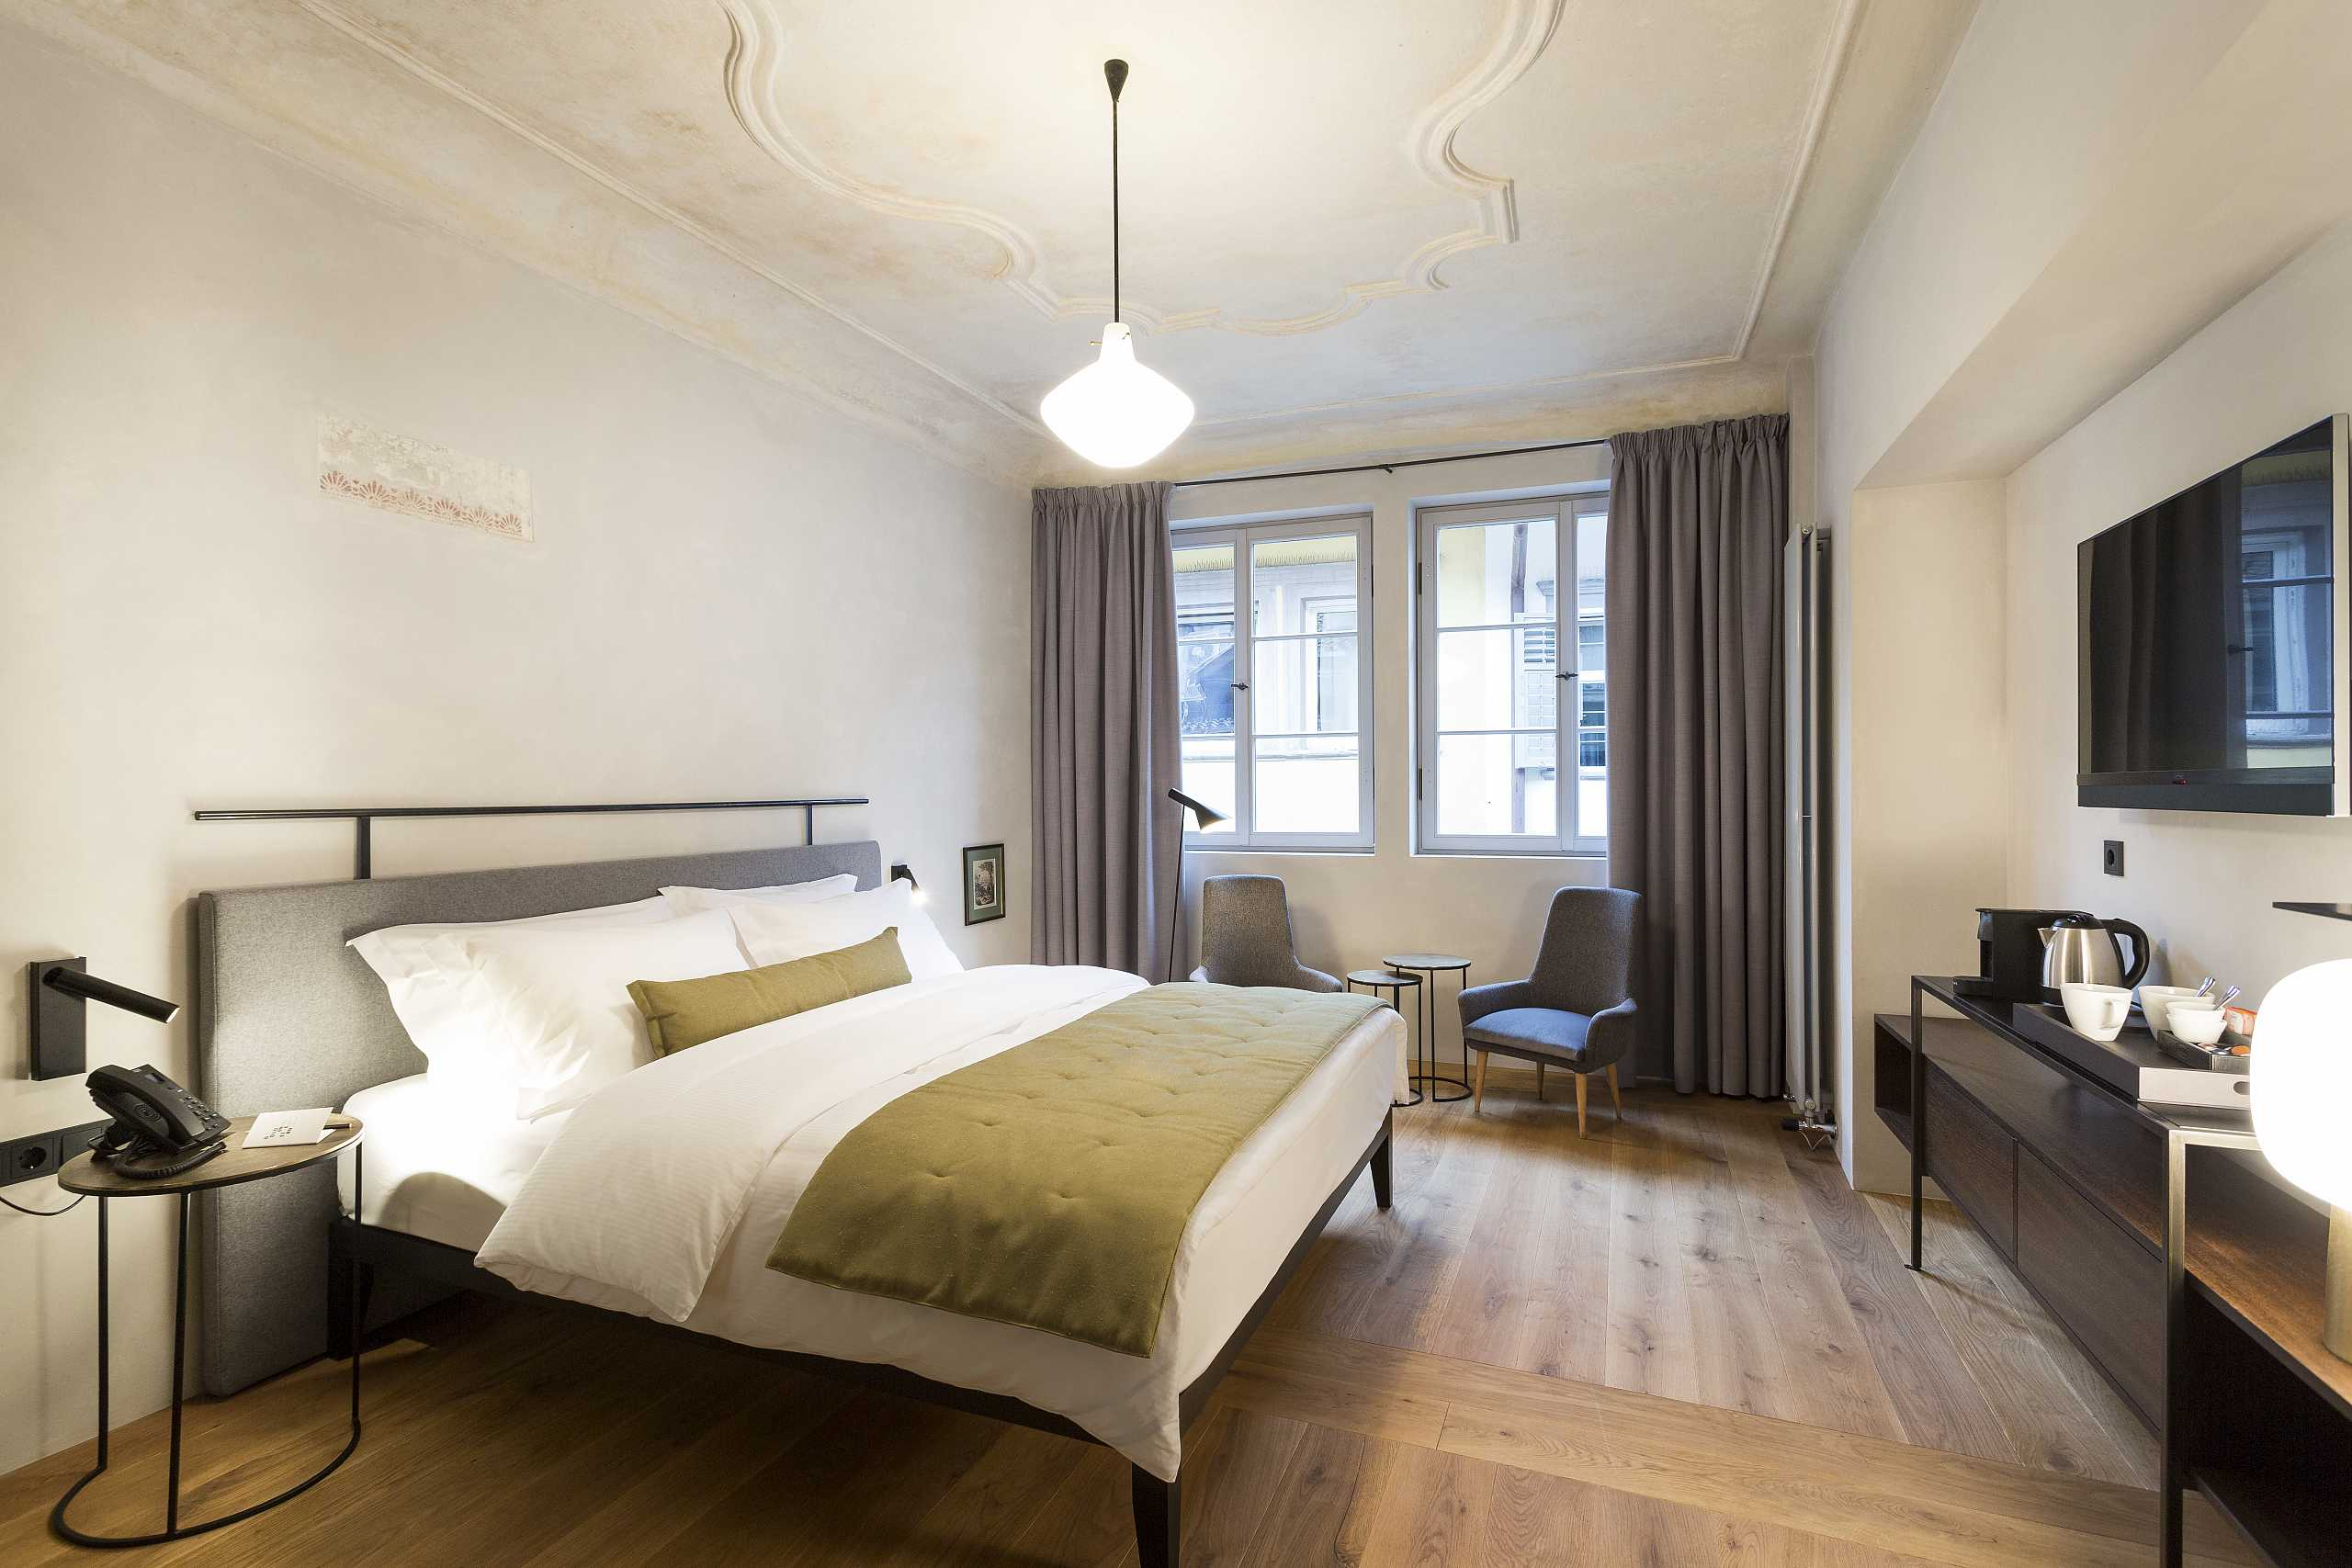 Goldenstern Townhouse, City hotel in Bolzano, Bolzano's old town, City center Bozen/Bolzano, Arcades of Bolzano, South Tyrol, Italy, Sightseeing, Activities, Suites, Apartments, Sense of well-being, De Lafayen